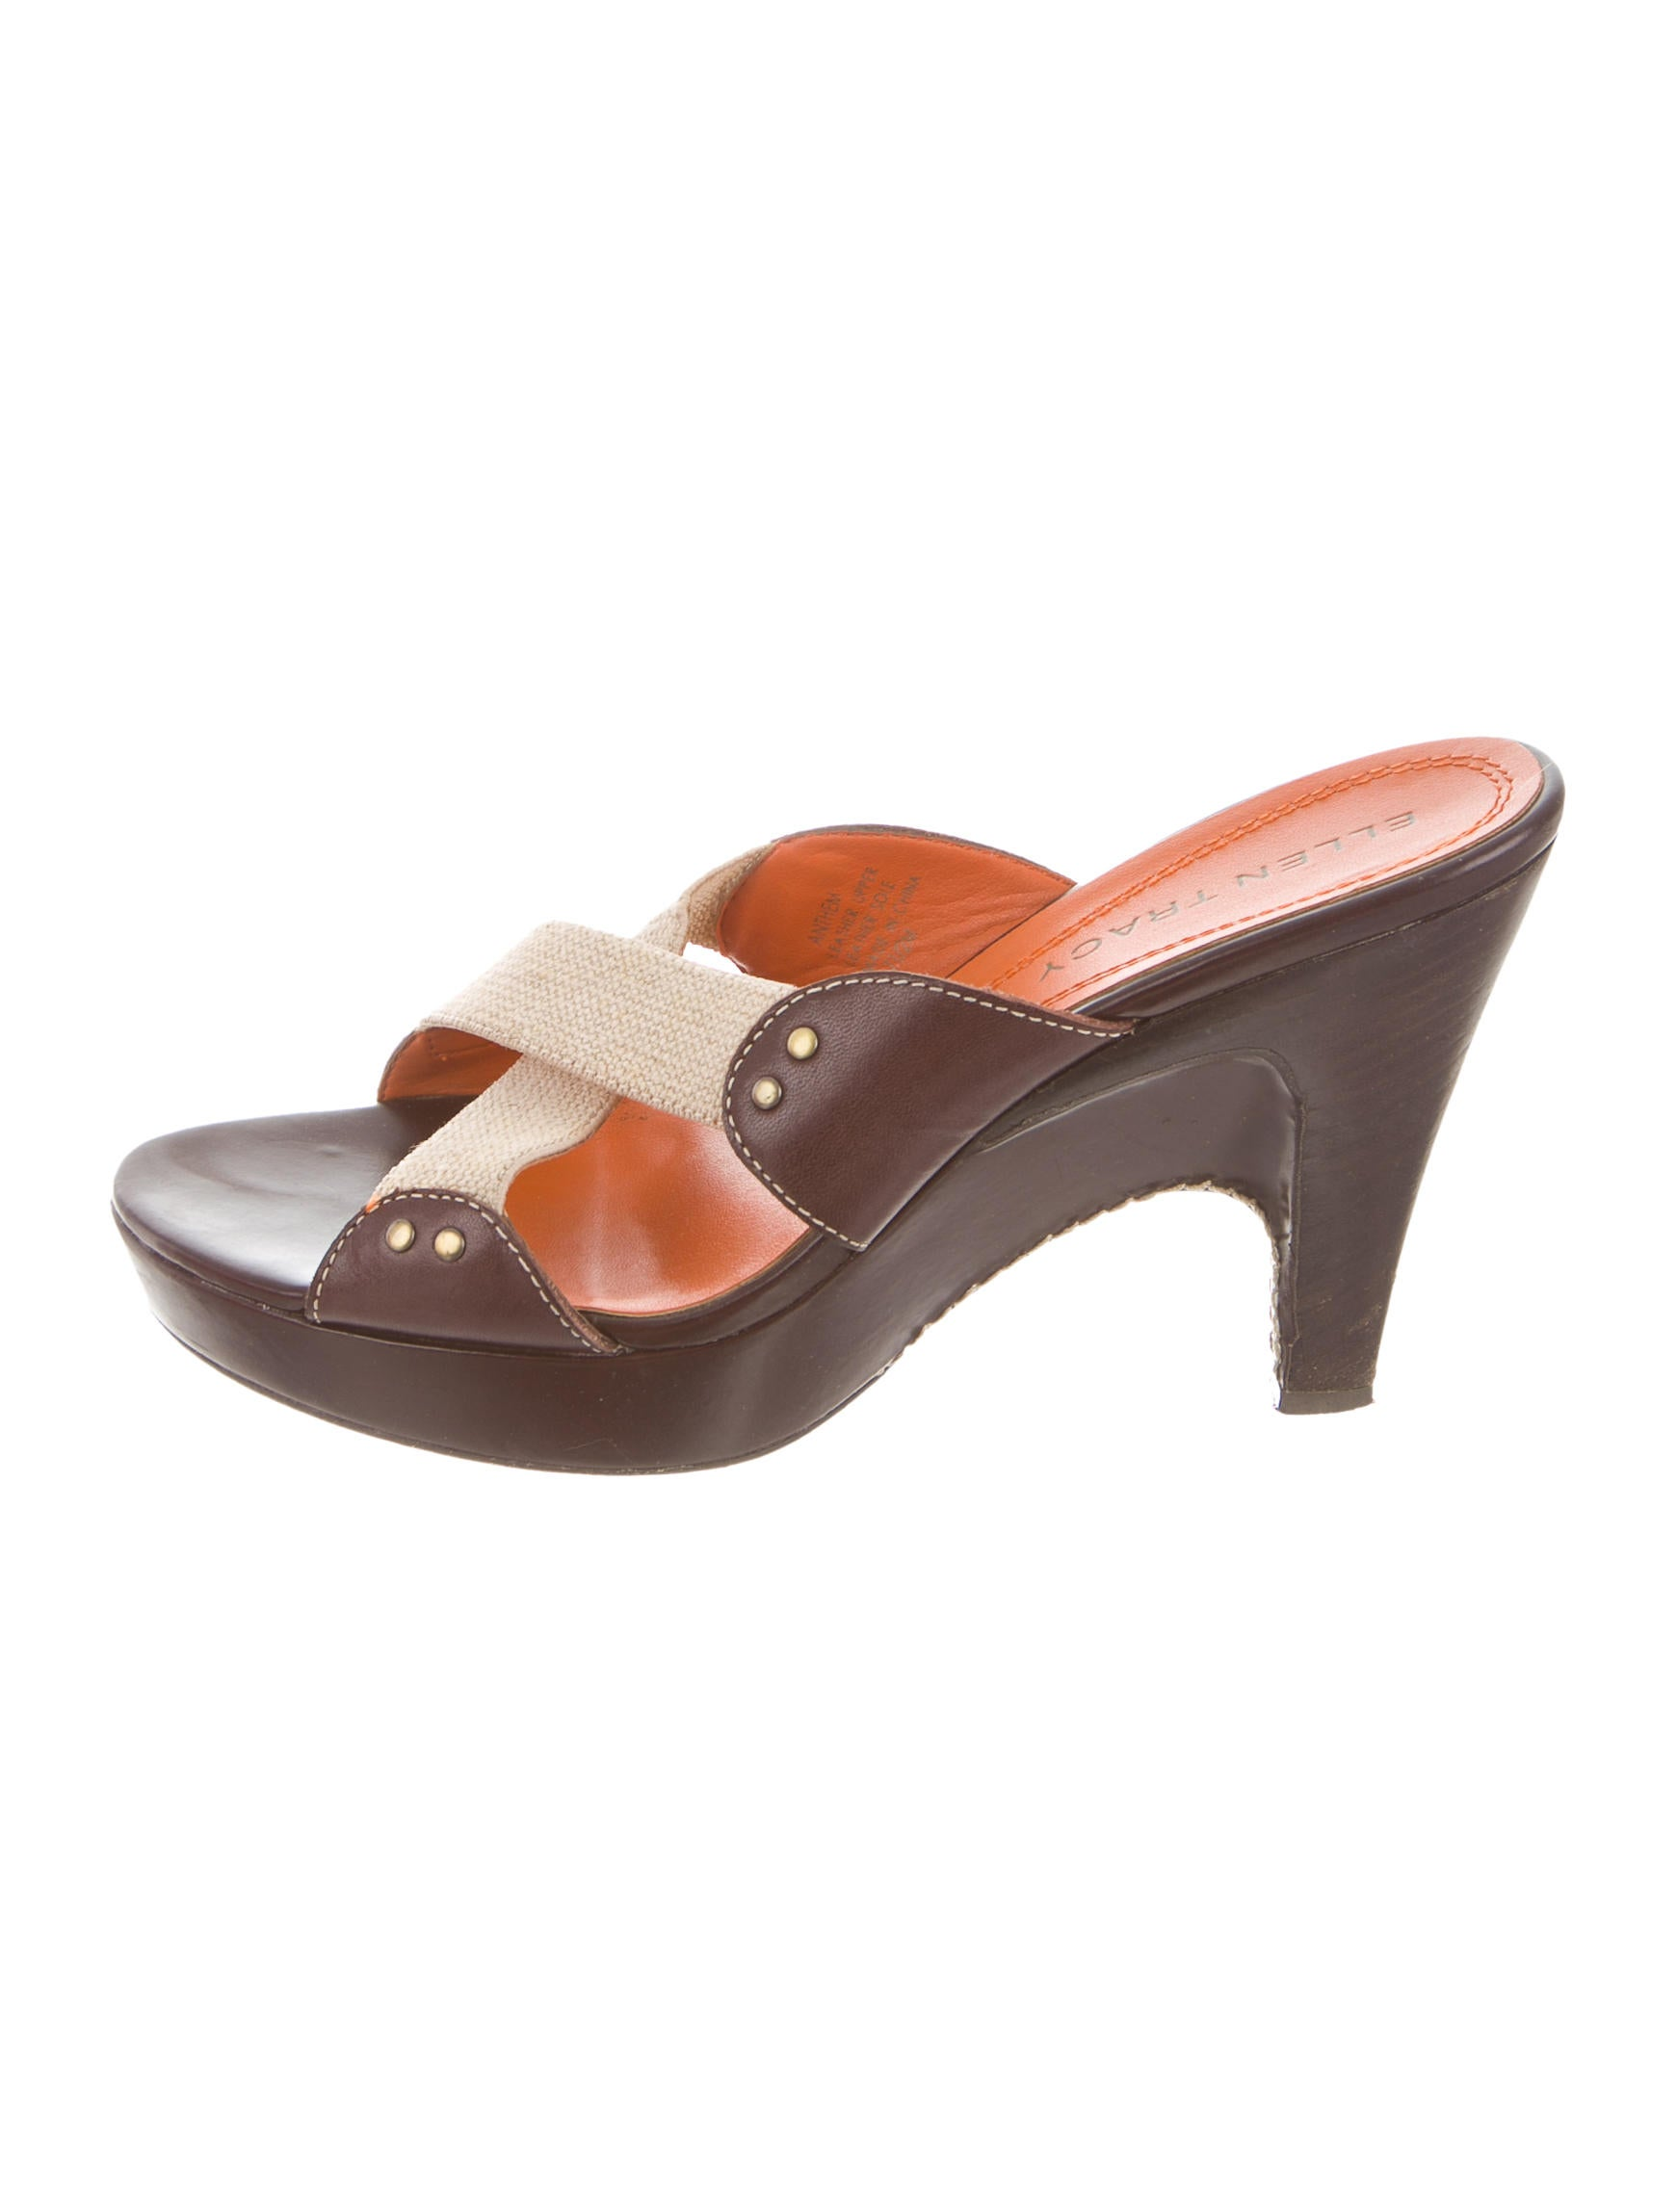 27431b01e3a Ellen tracy leather crossover sandals shoes weltr jpg 1741x2297 Ellen tracy  sandals